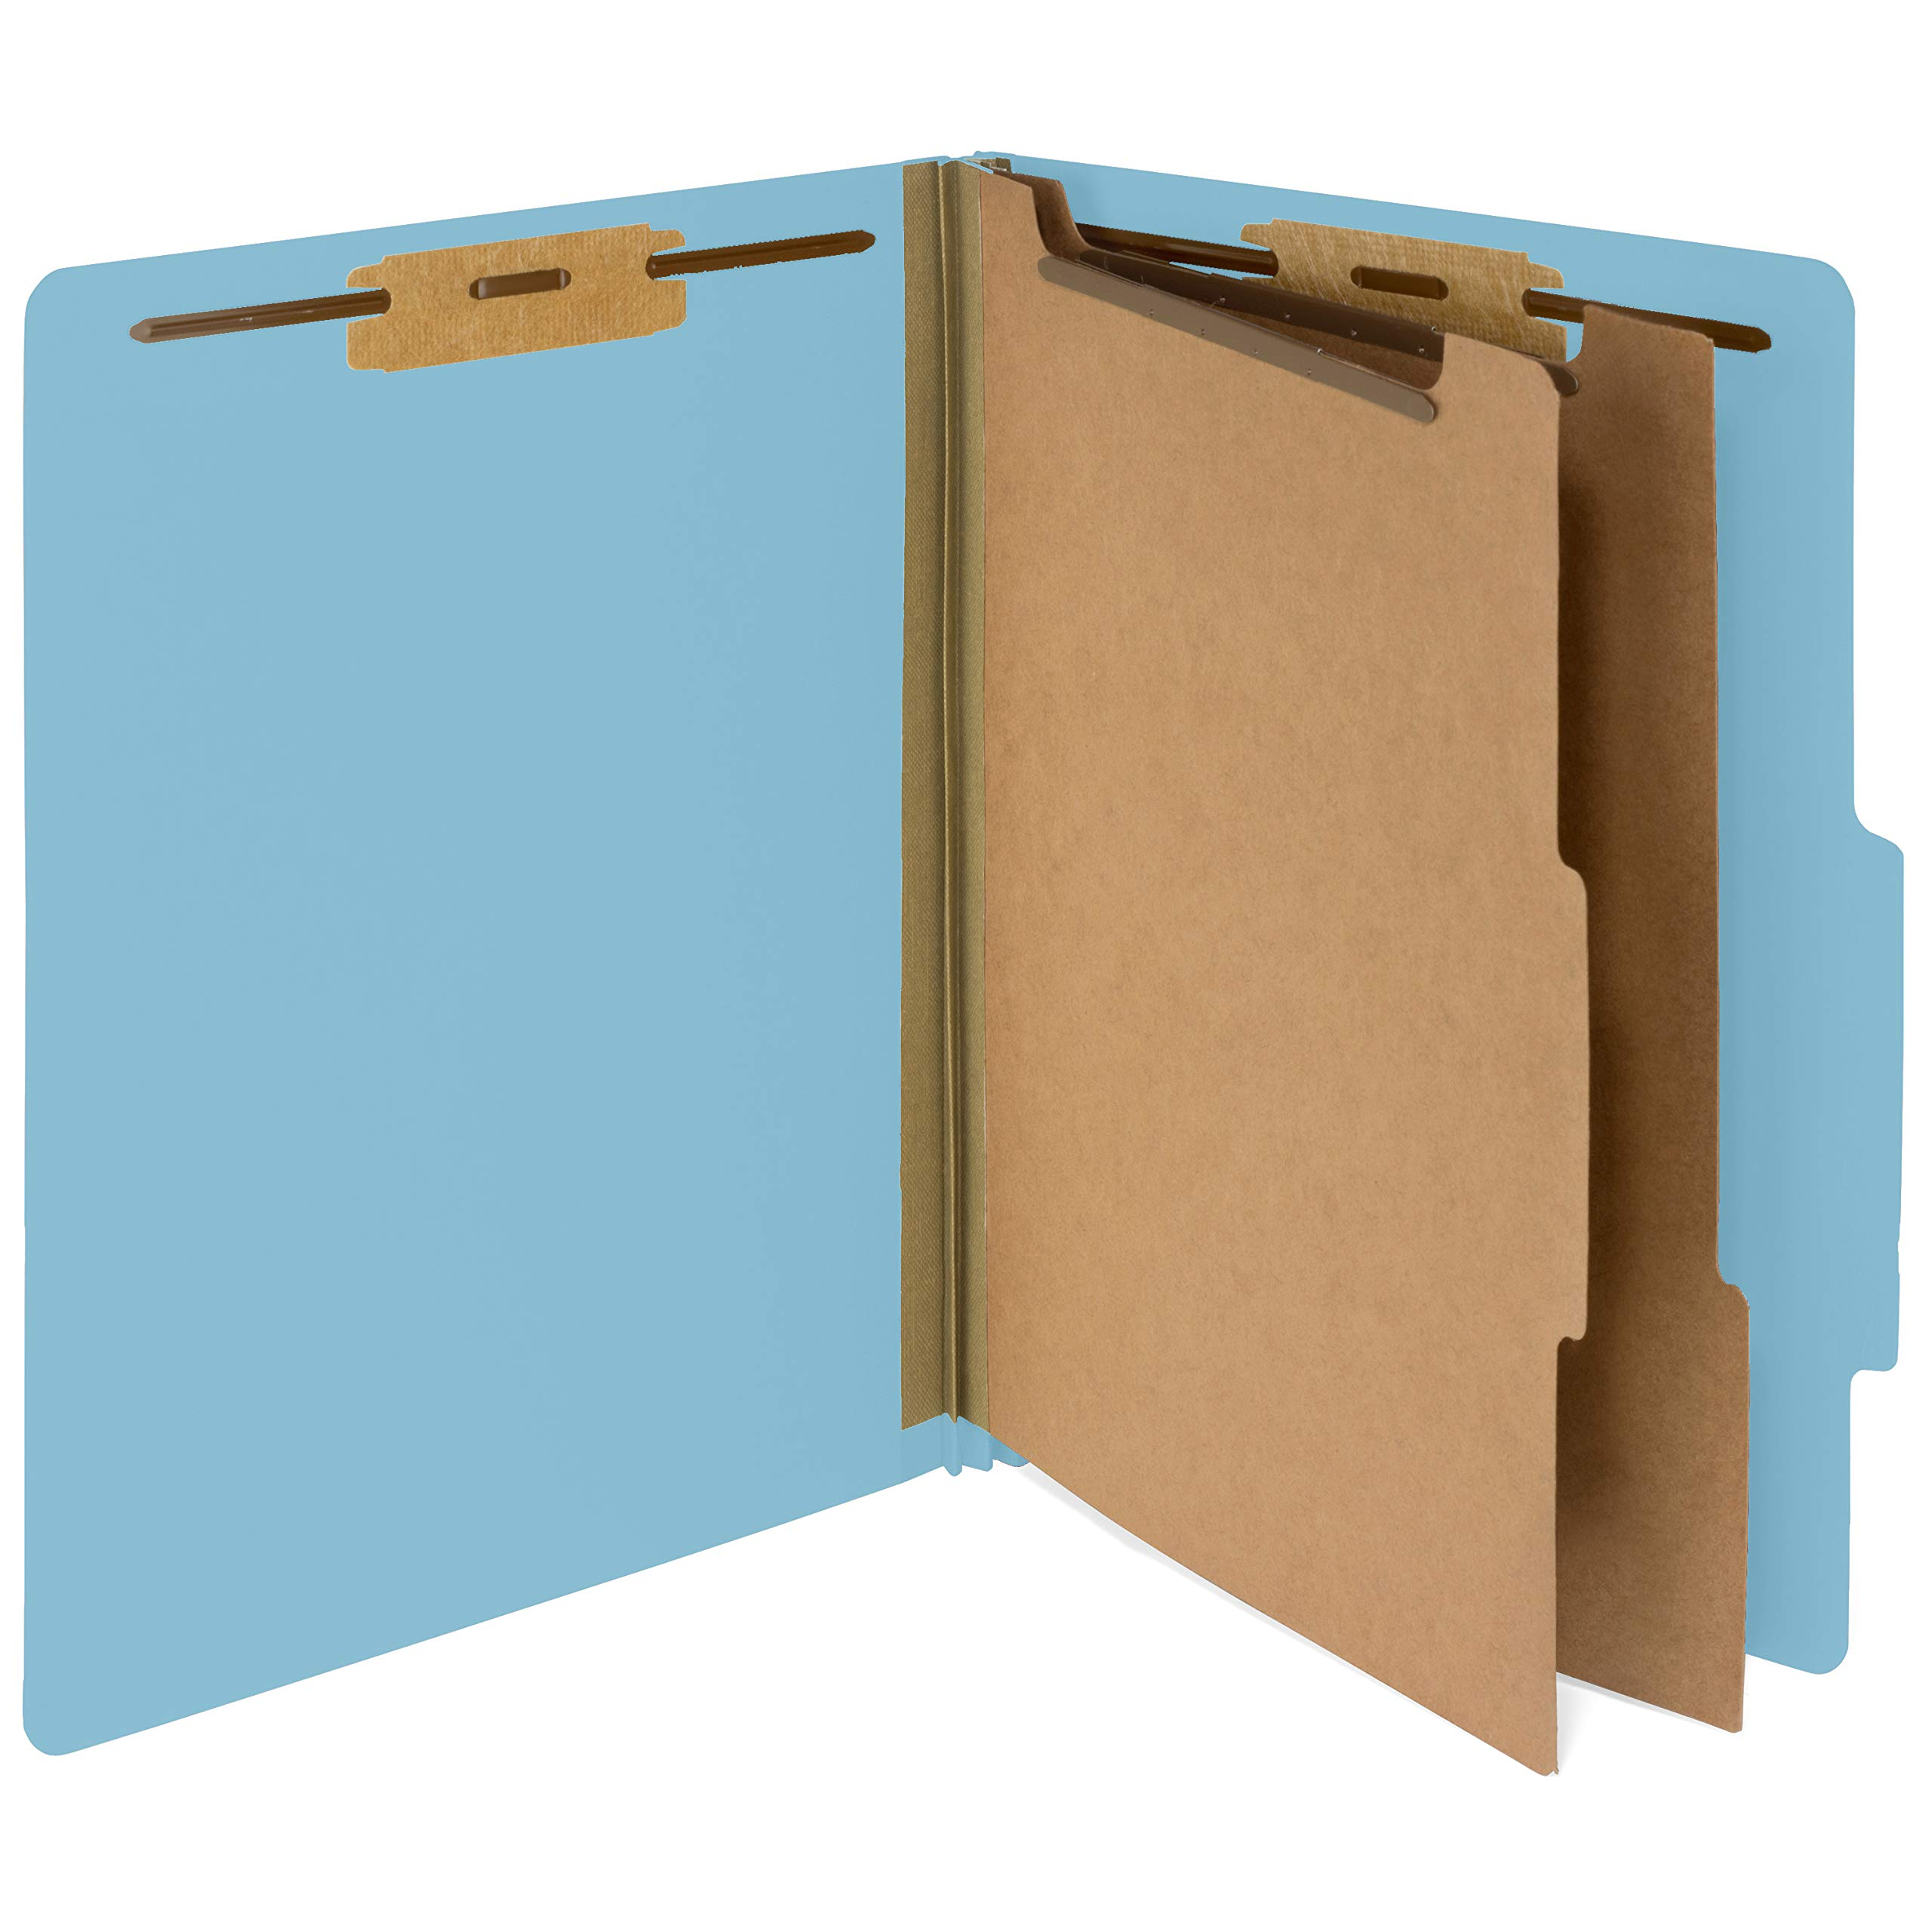 10 Blue Classification Folders- 2 Divider-2'' Tyvek expansions- Durable 2 Prongs Designed to Organize Standard Medical Files, Law Client and Office Files– Letter Size, Light Blue, 10 Pack (-327)